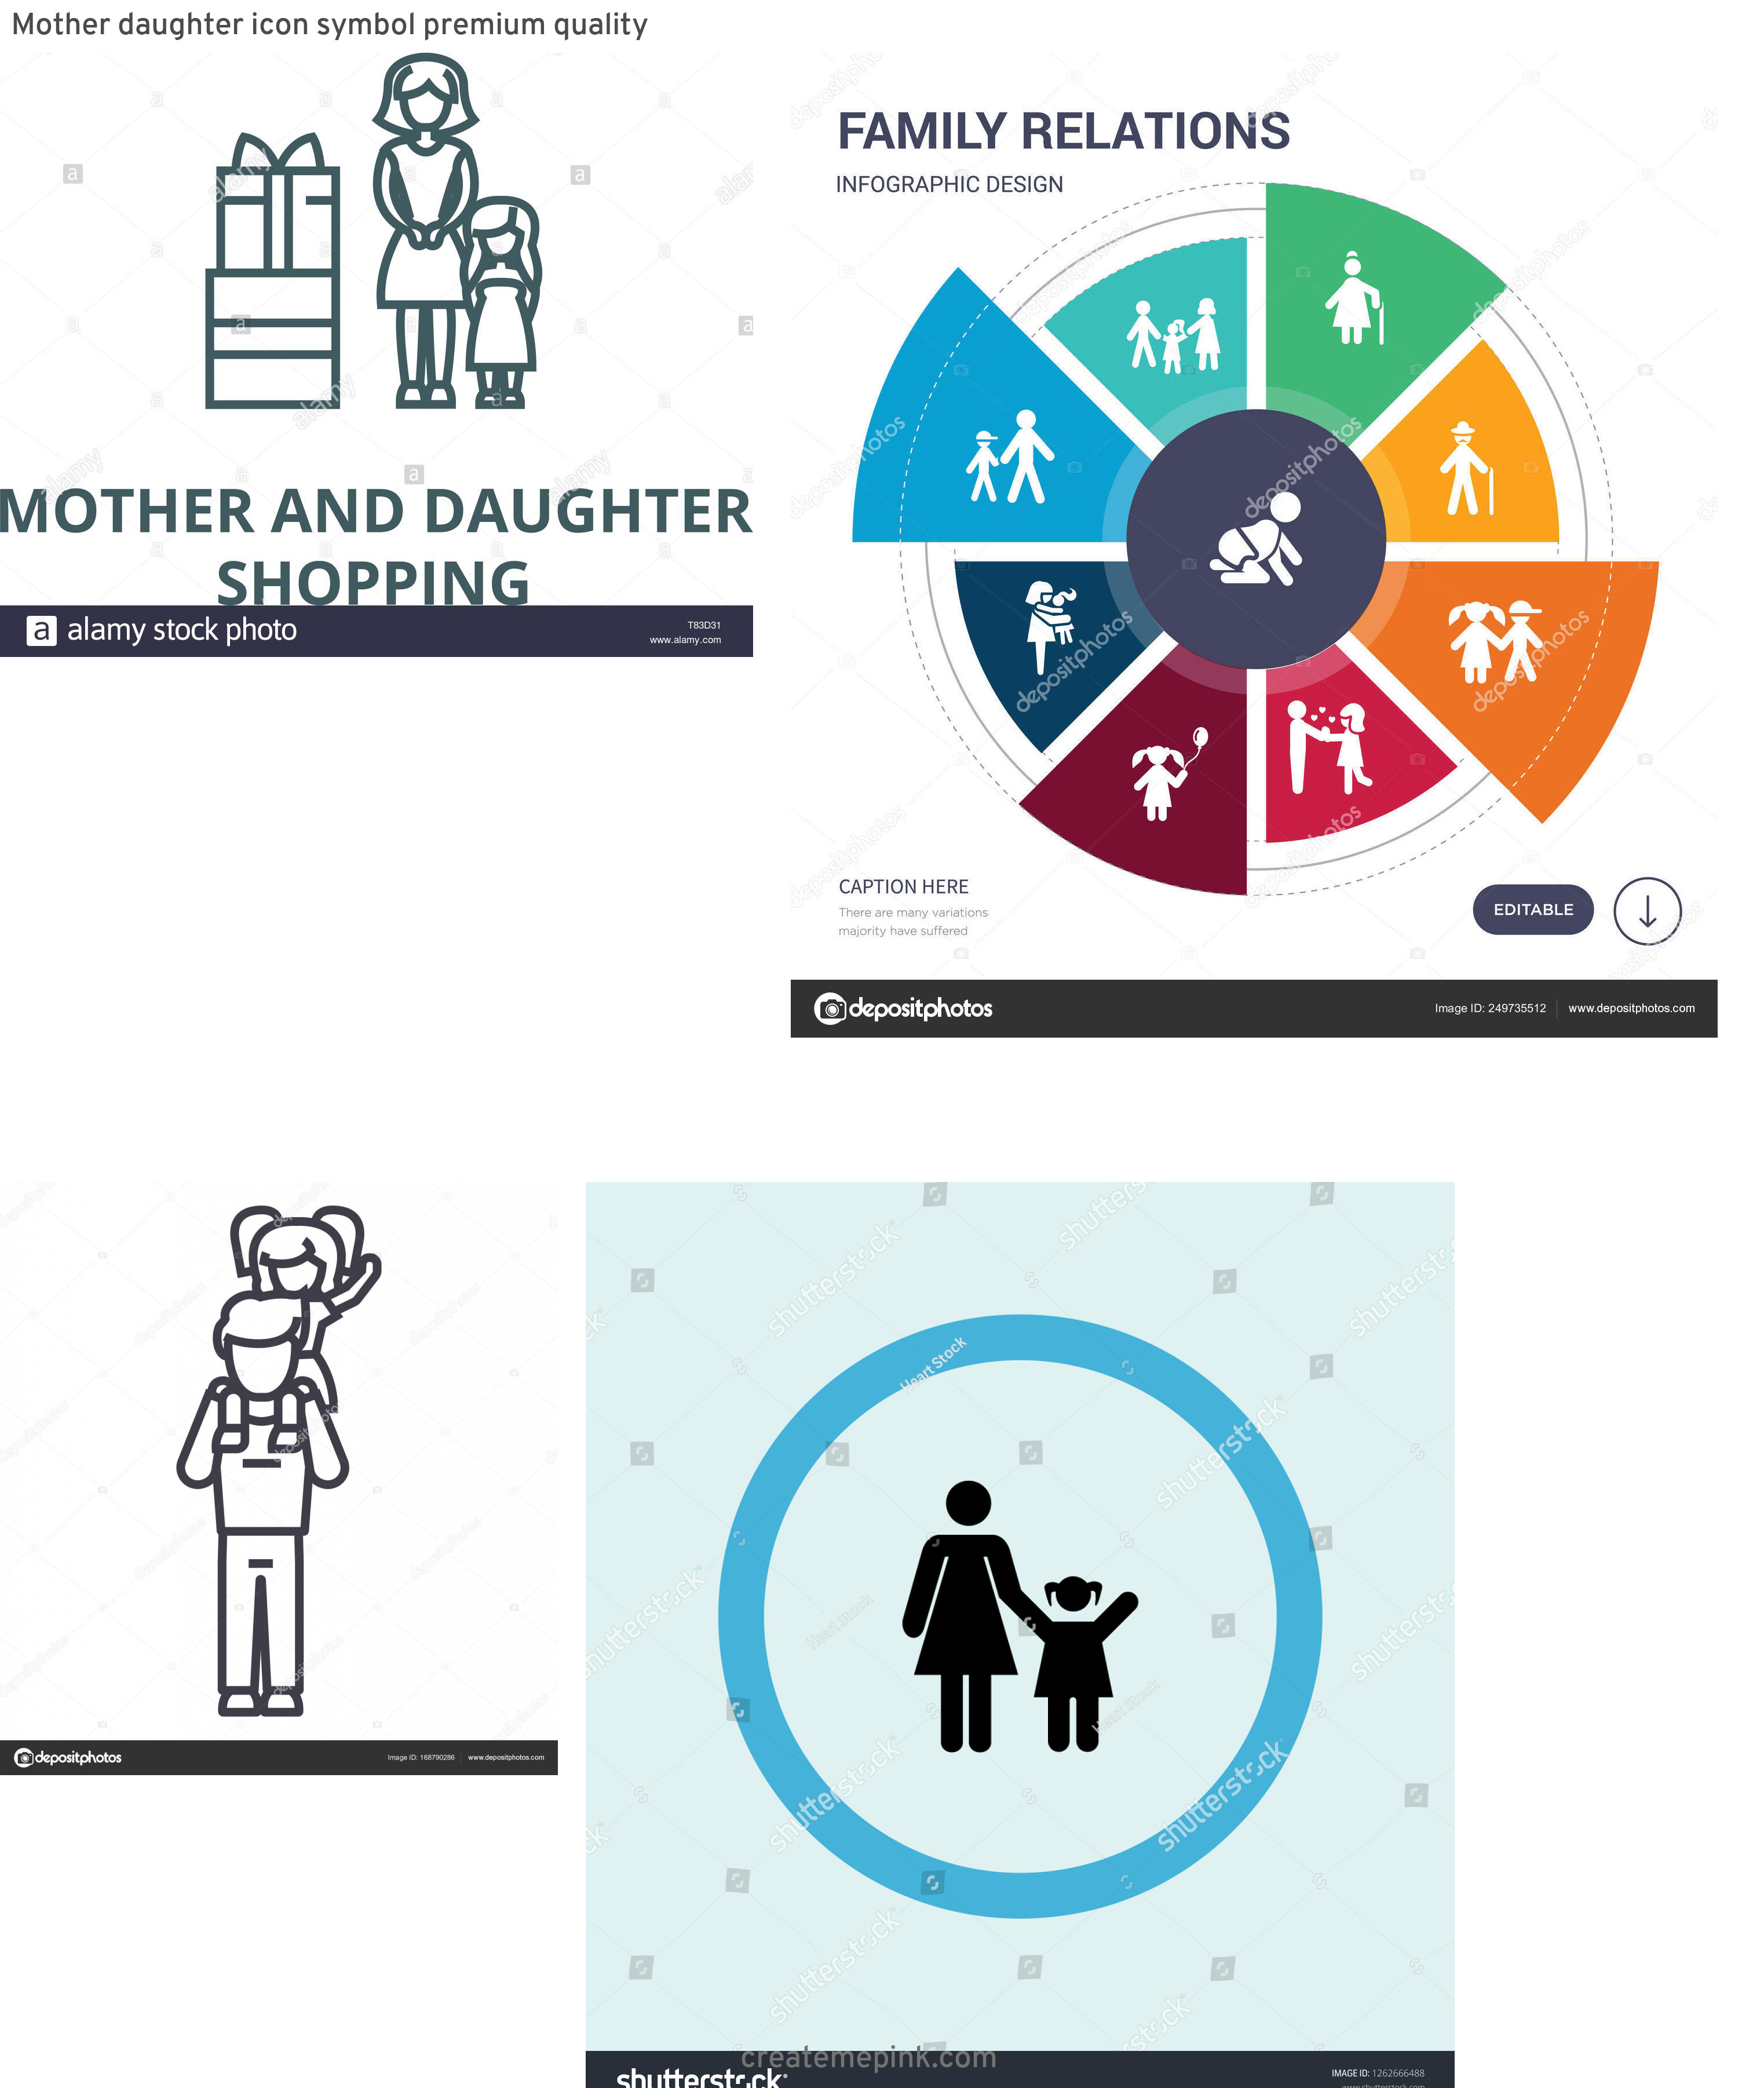 Daughter Vector Icons: Mother Daughter Icon Symbol Premium Quality